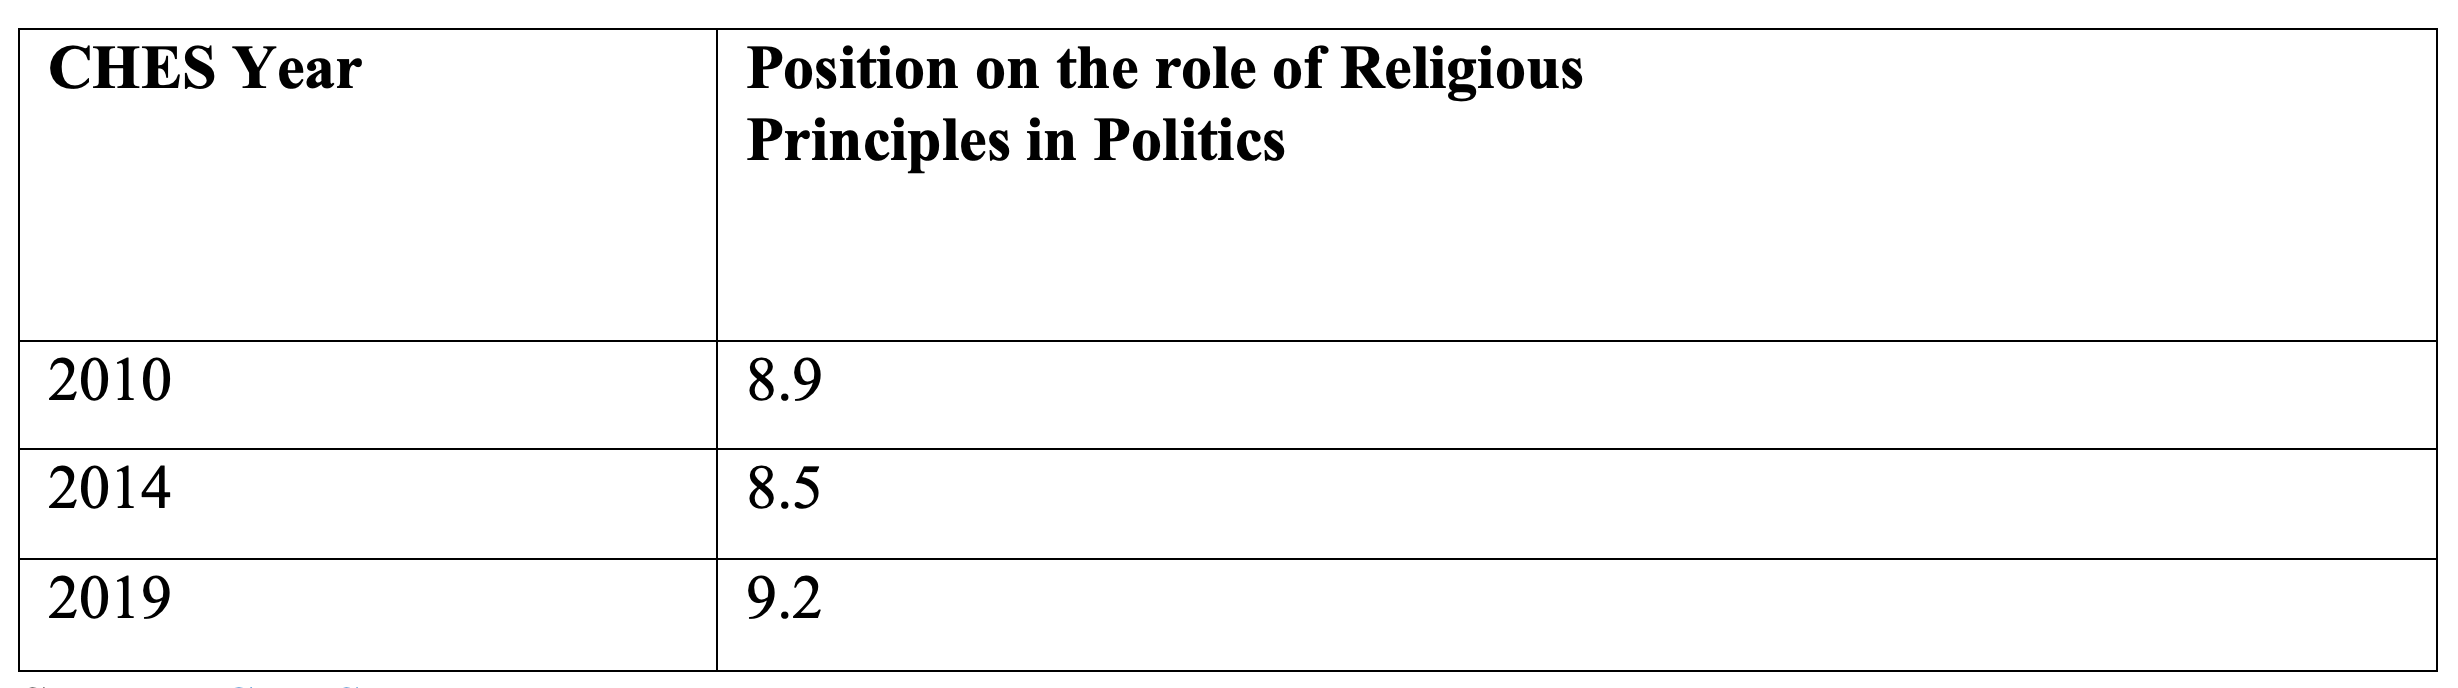 Table 2. The Position of The PiS Party on Religious Principles in Politics